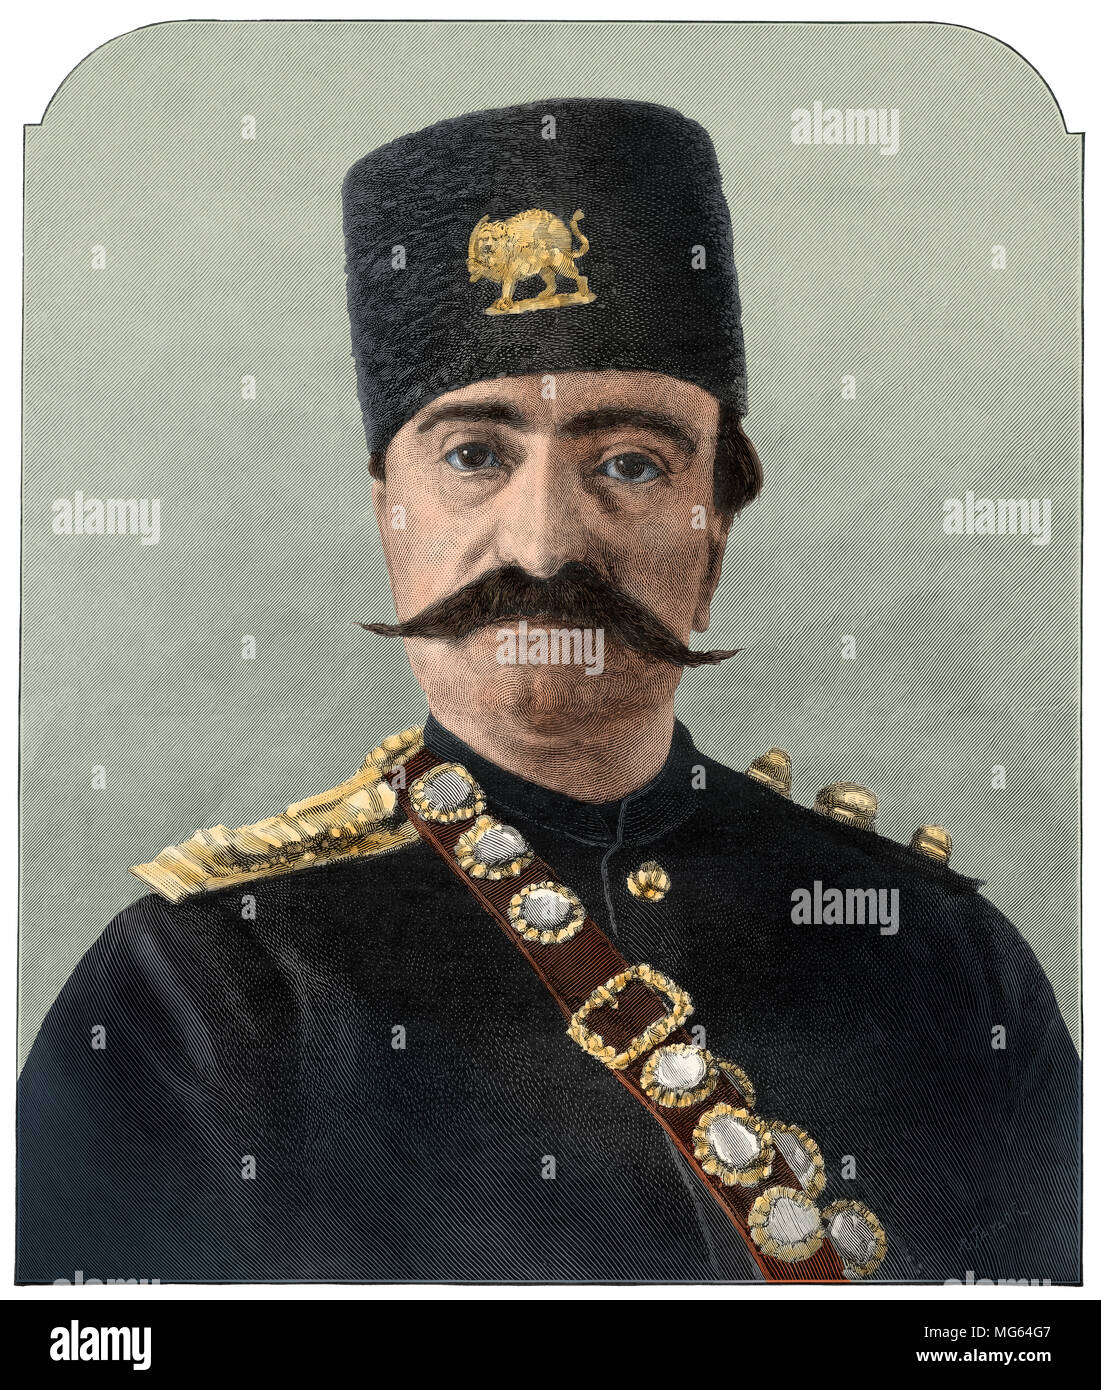 Naser al-Din, Shah of Iran, 1880s. Digitally colored woodcut of a photograph - Stock Image